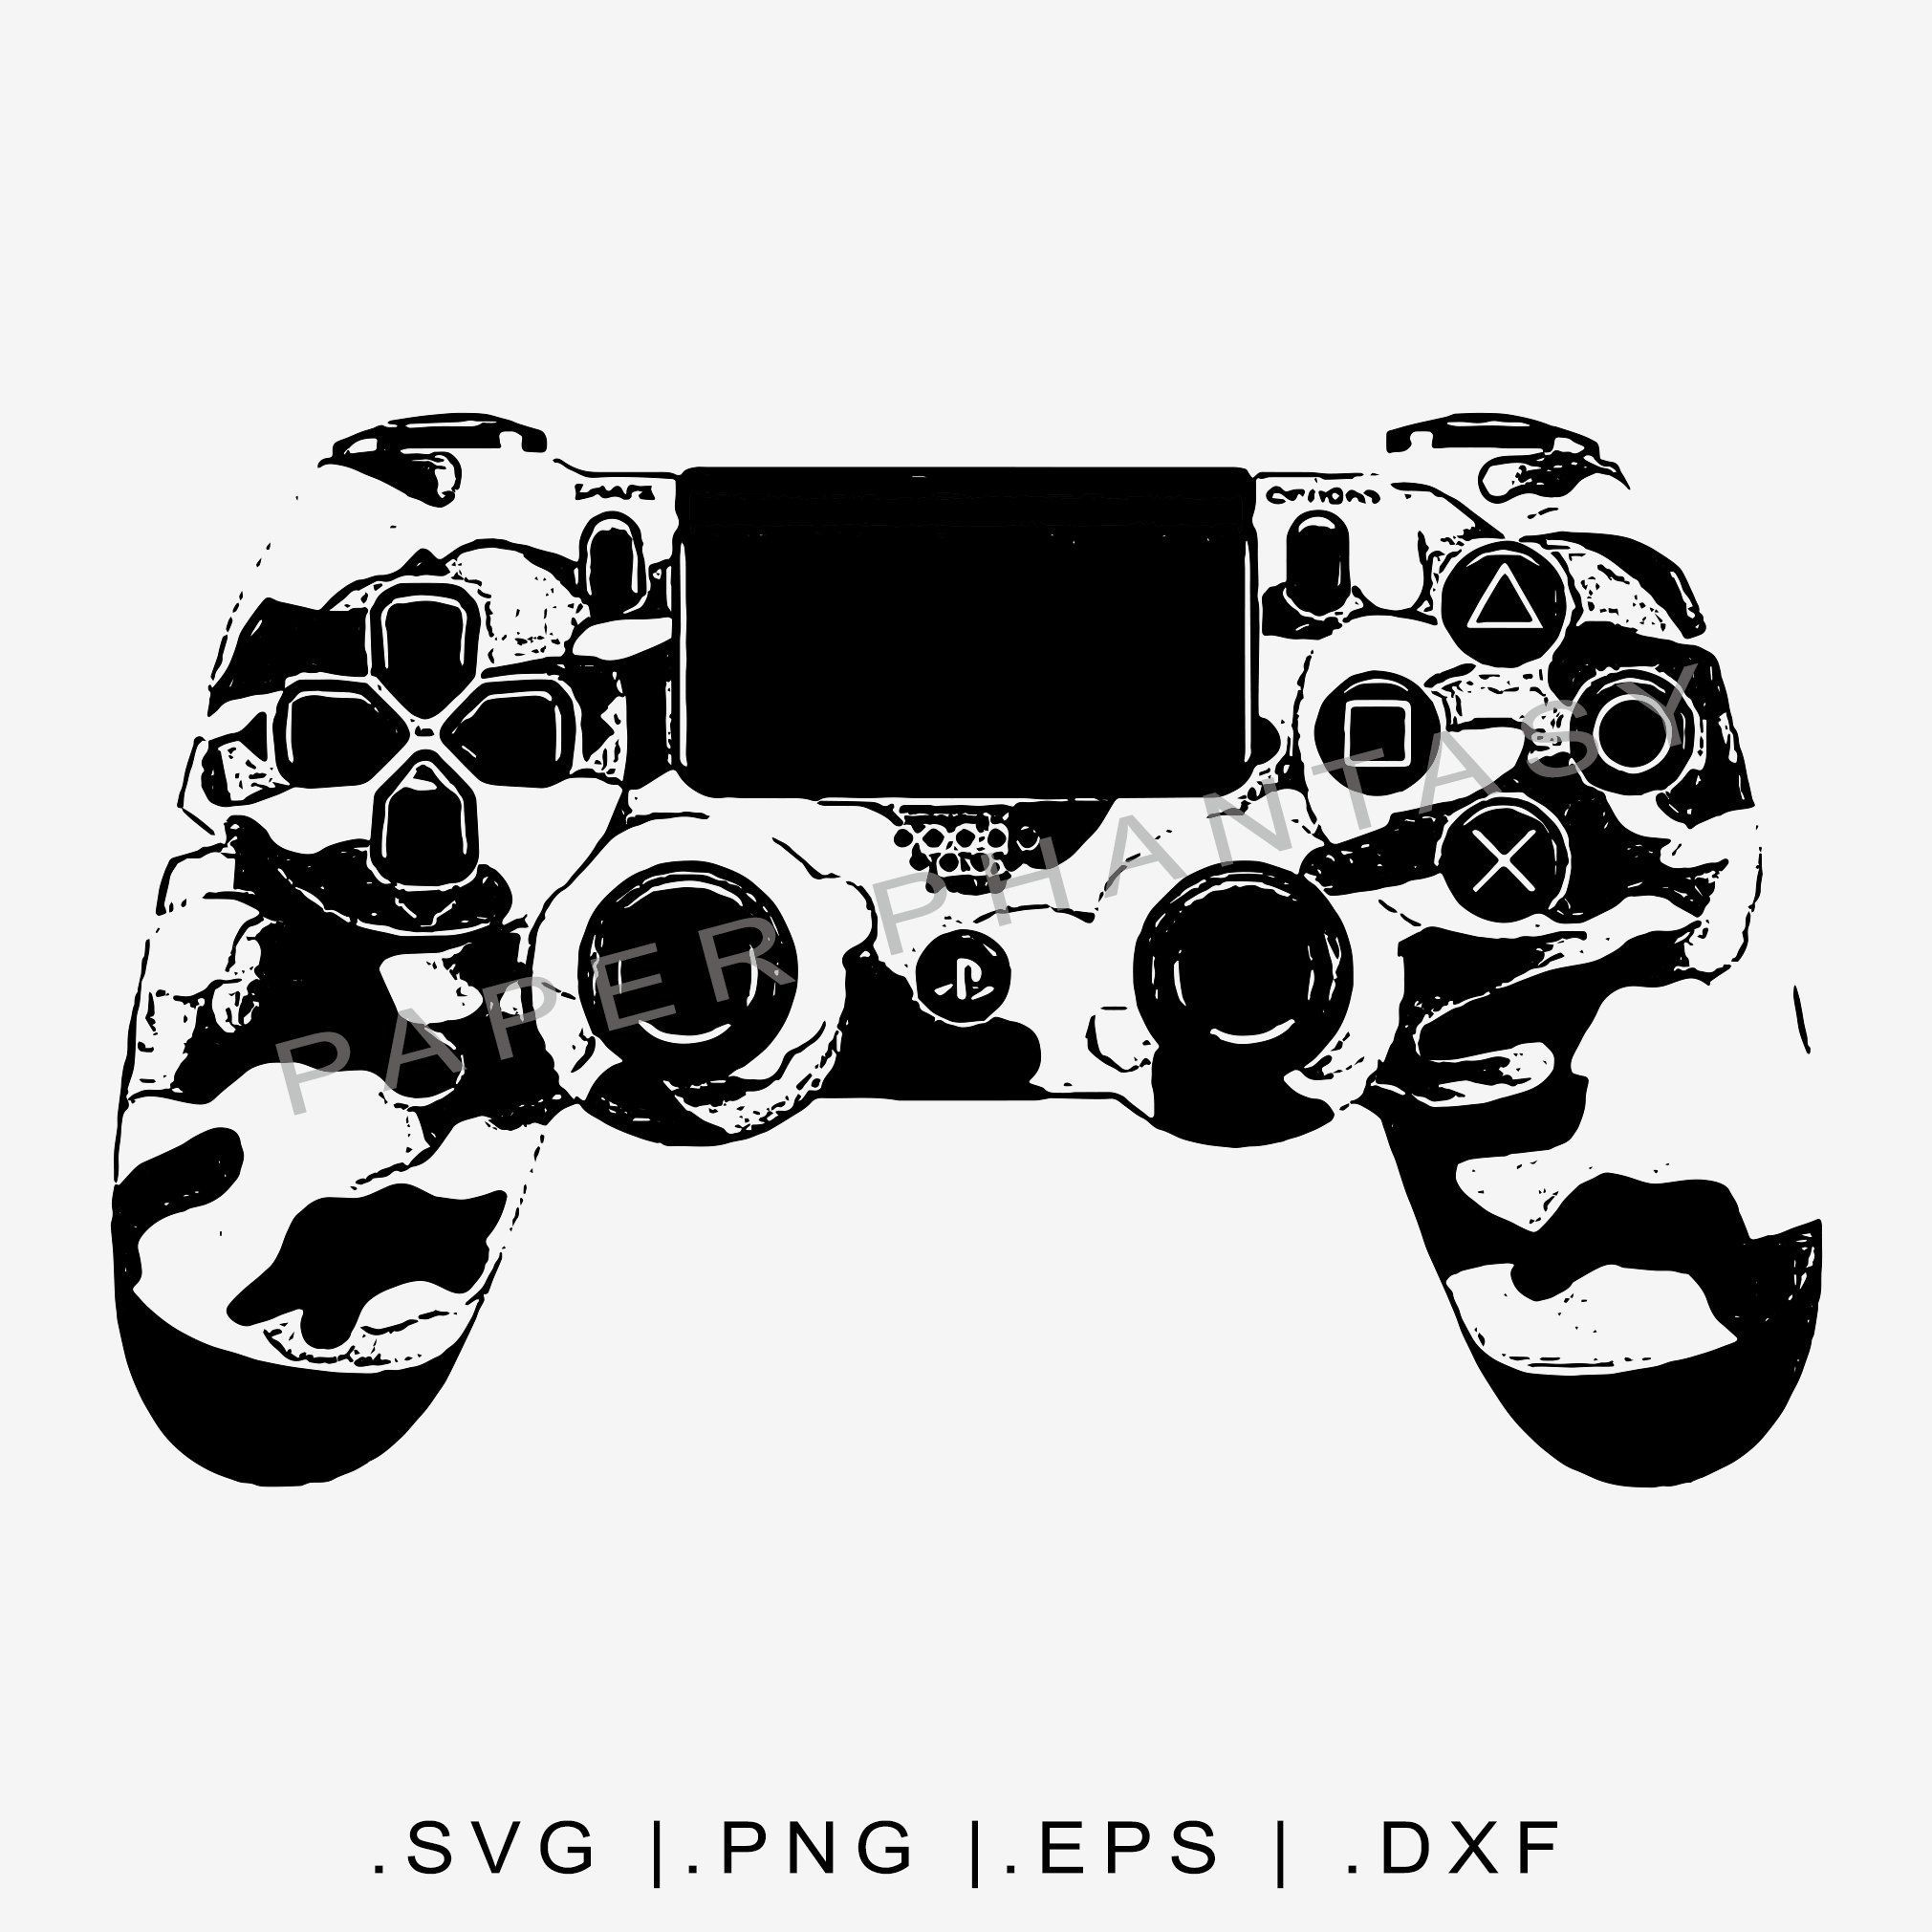 Grunge Playstation 4 Controller Svg Video Game T Shirt Design Dtg Graphic Tee Png Vector Clip Shirt Designs Grunge T Shirt Designs